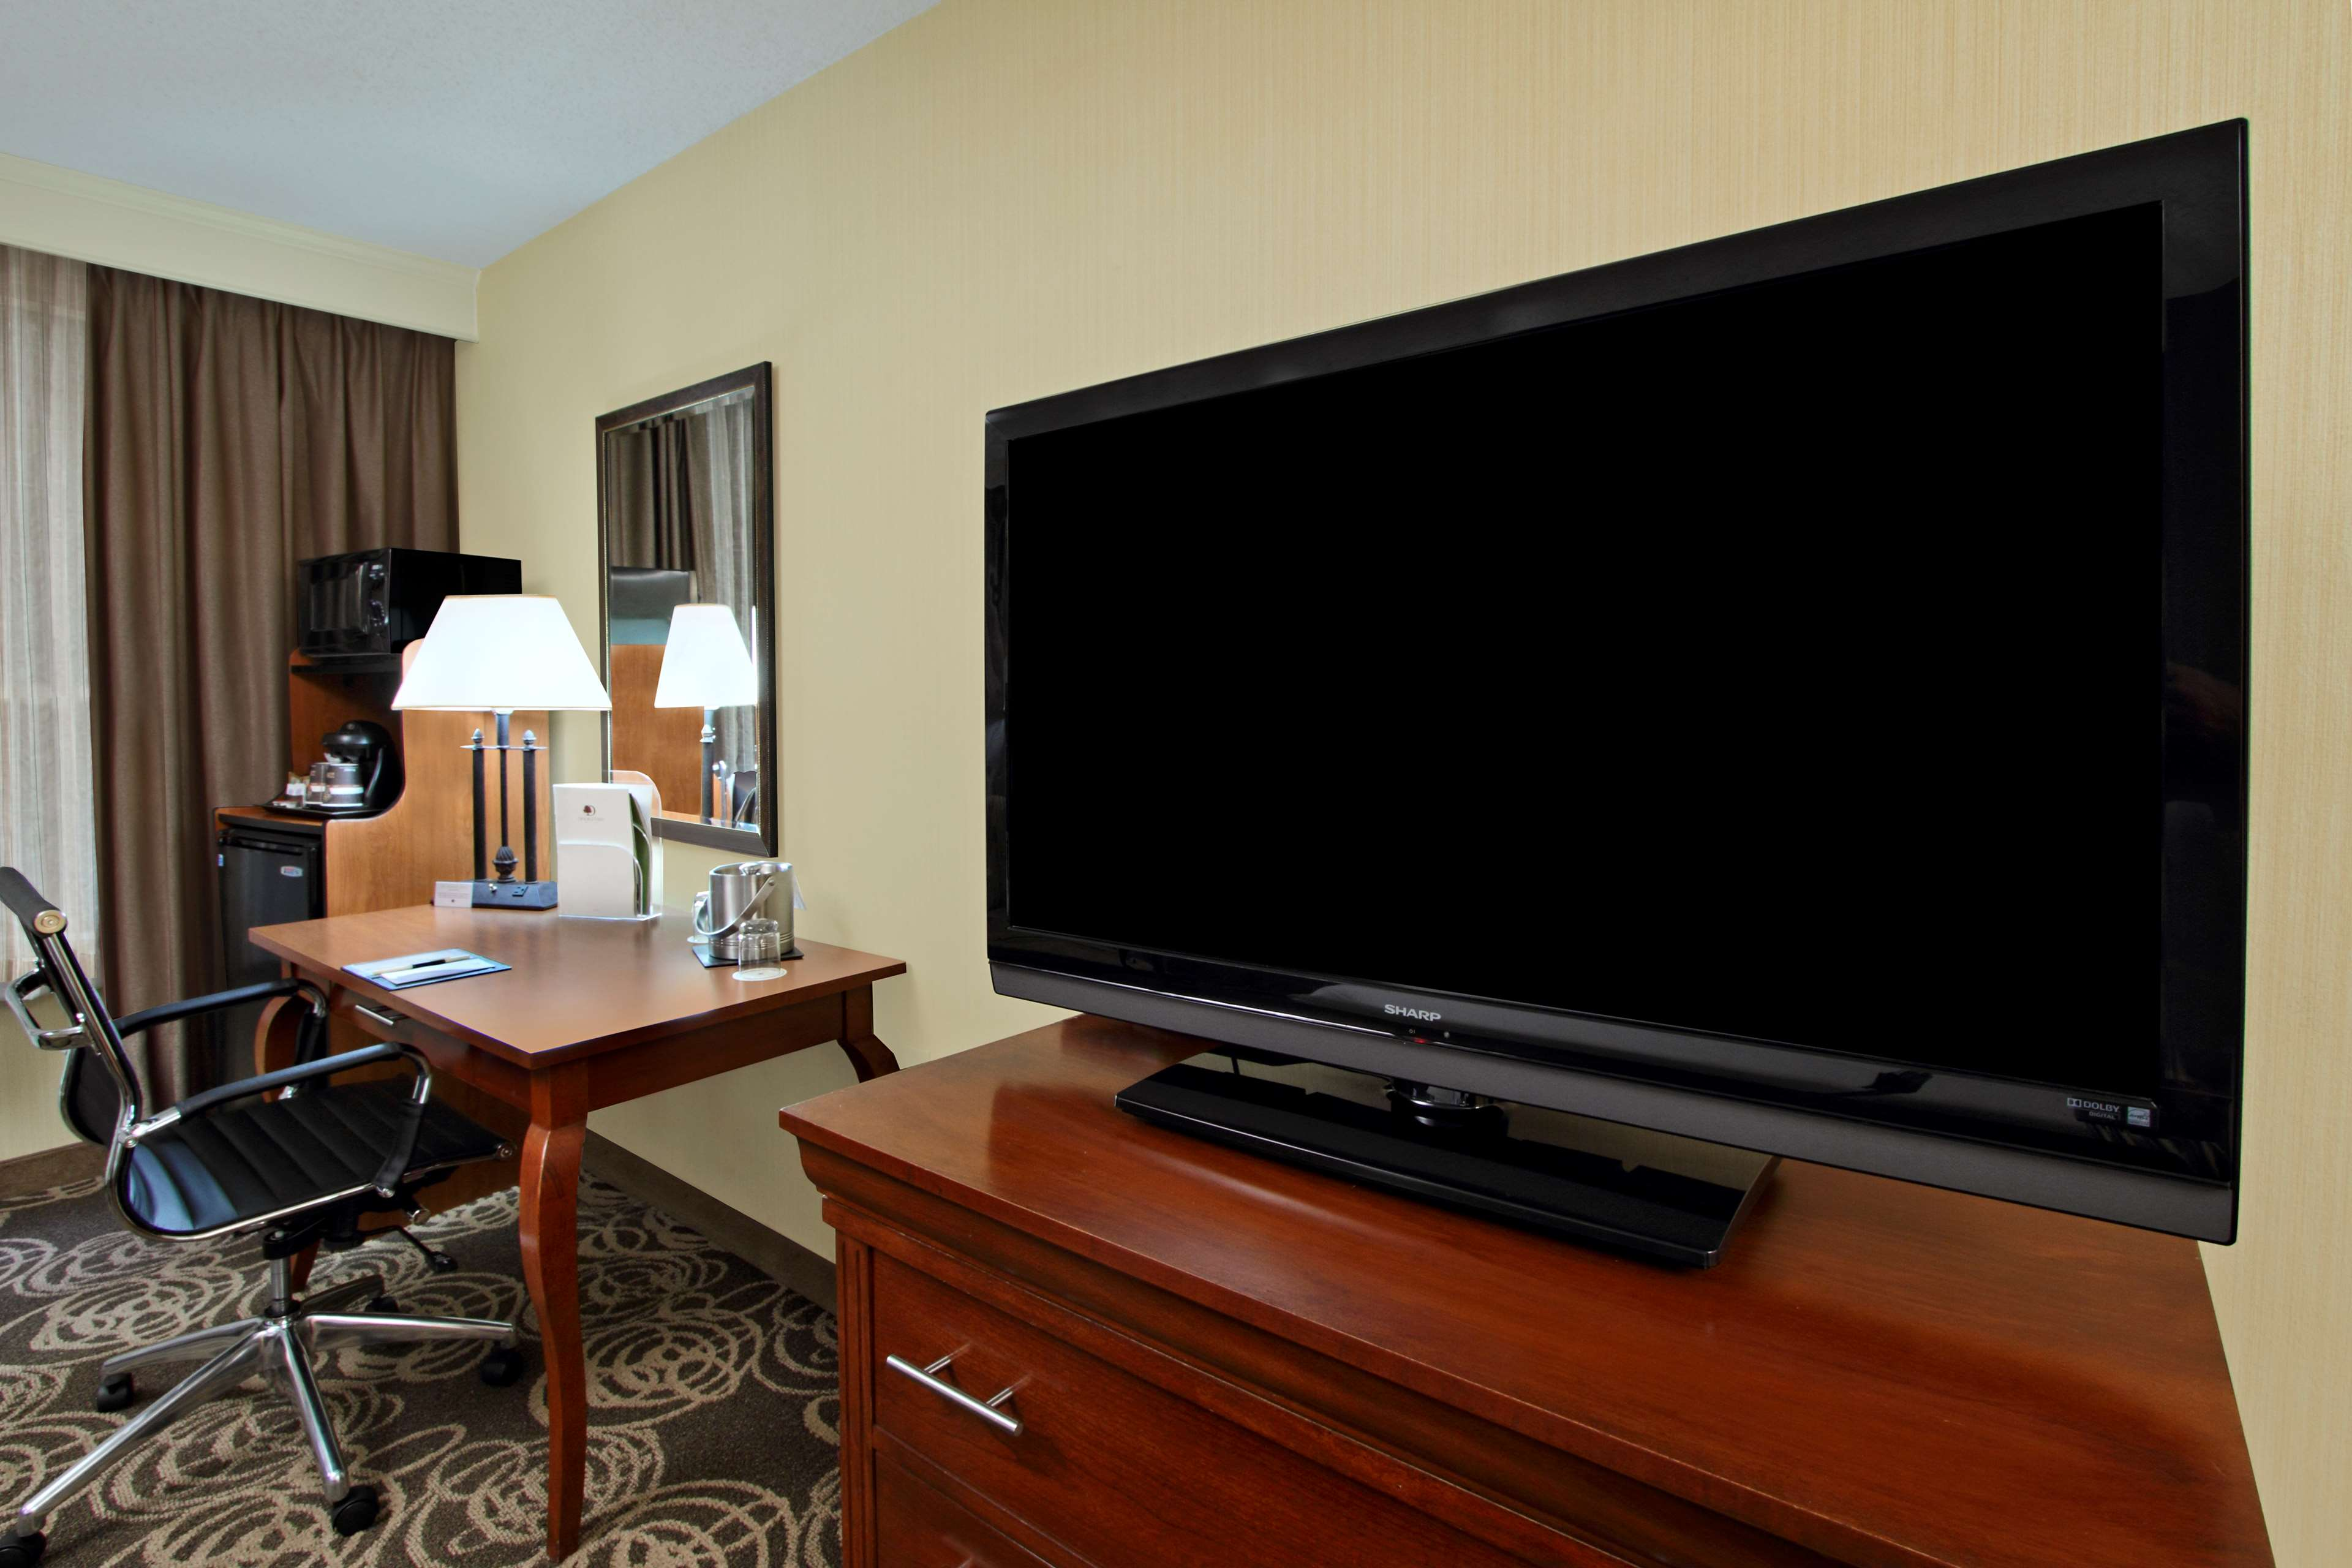 DoubleTree by Hilton Hotel Mahwah image 20